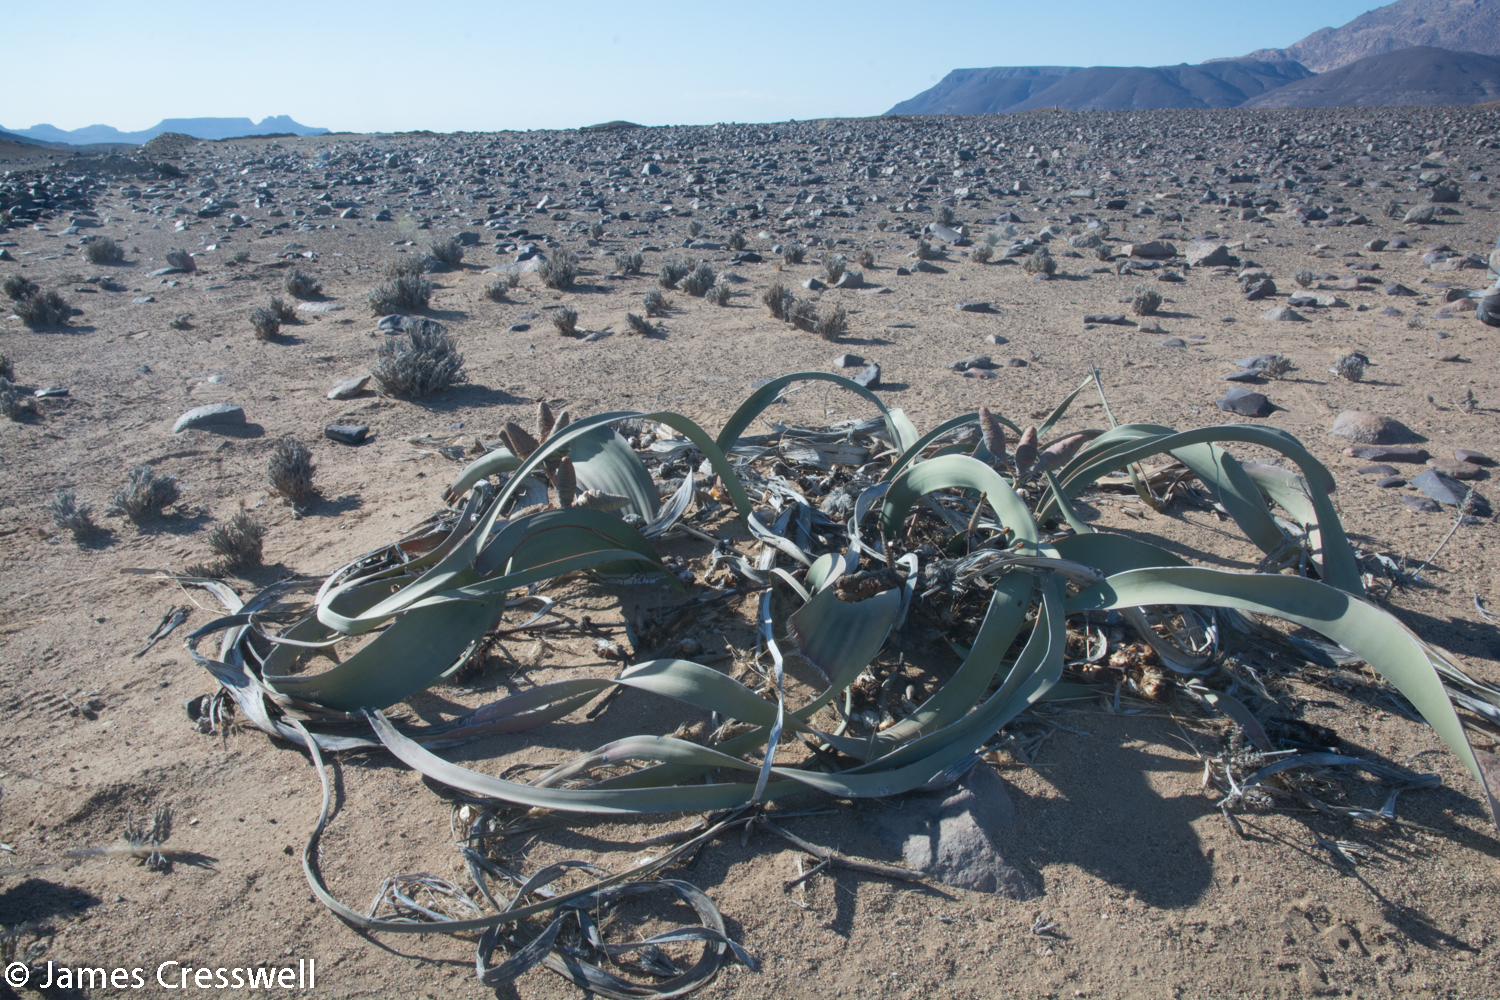 The national emblem plant of Namibia: Welwitschia. This amazing desert plant can capture moisture from coastal for and can live to over 2000 years old.